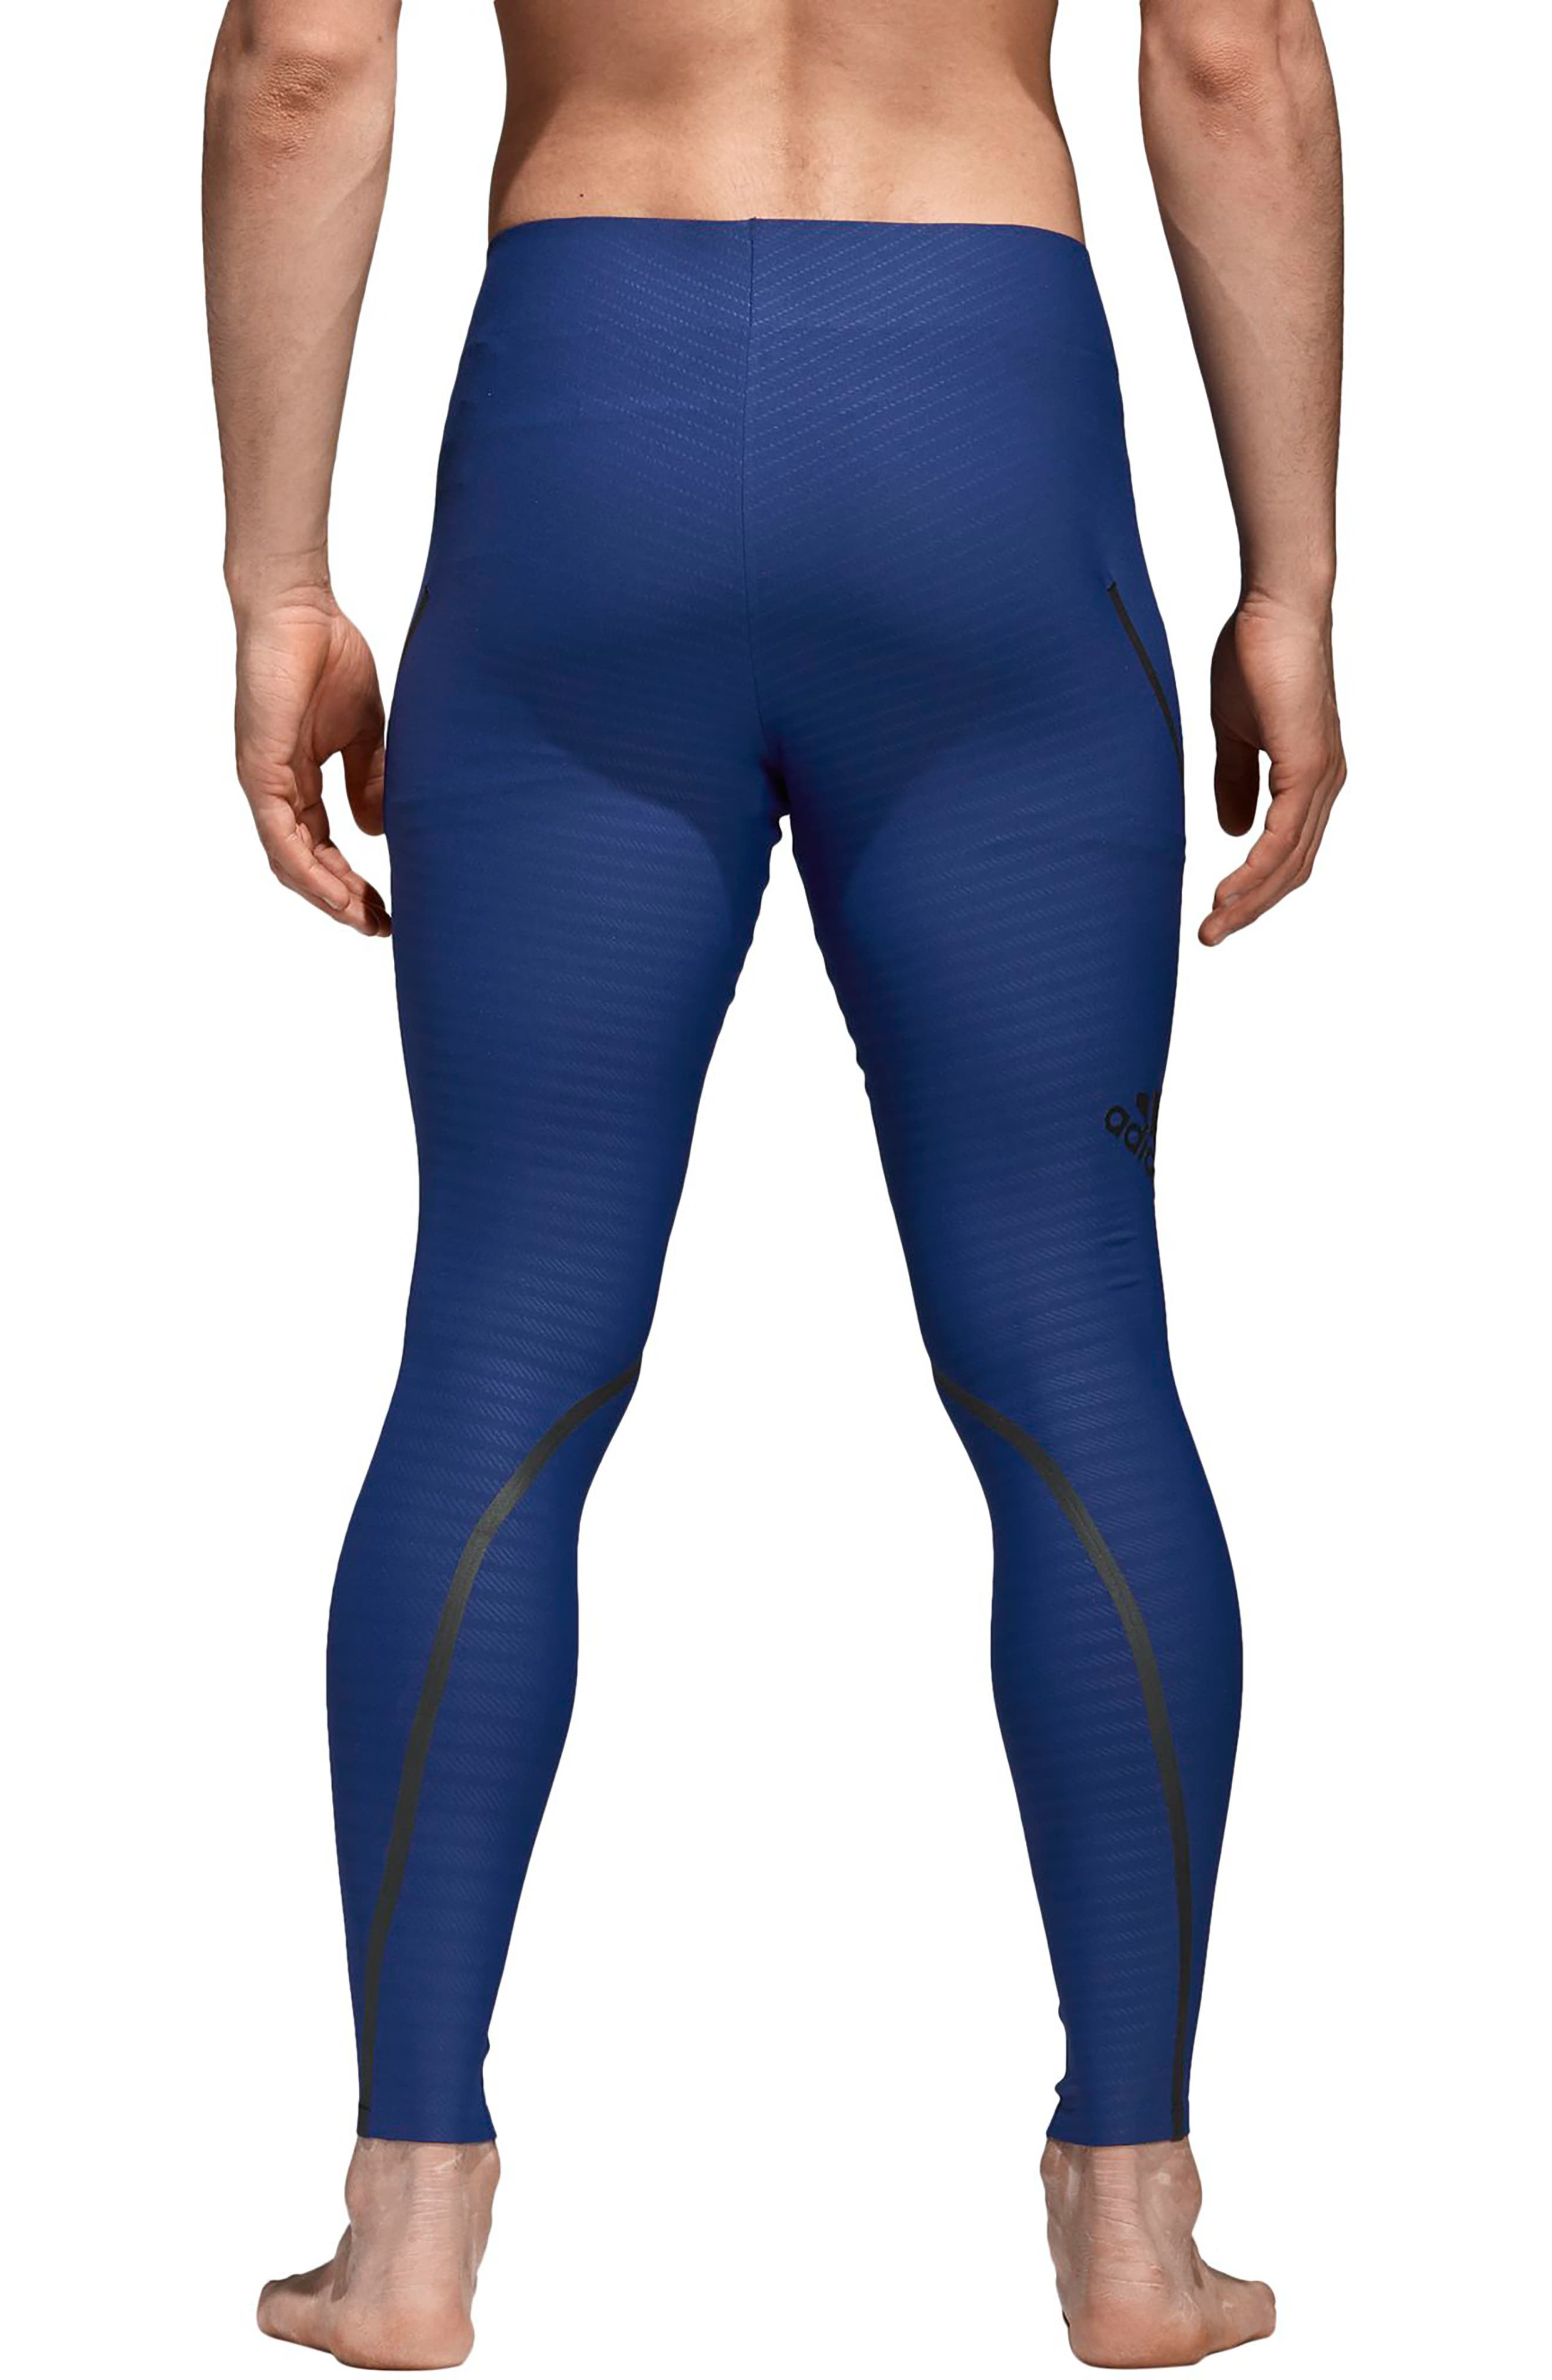 Alphaskin 360 Tights,                             Alternate thumbnail 2, color,                             418